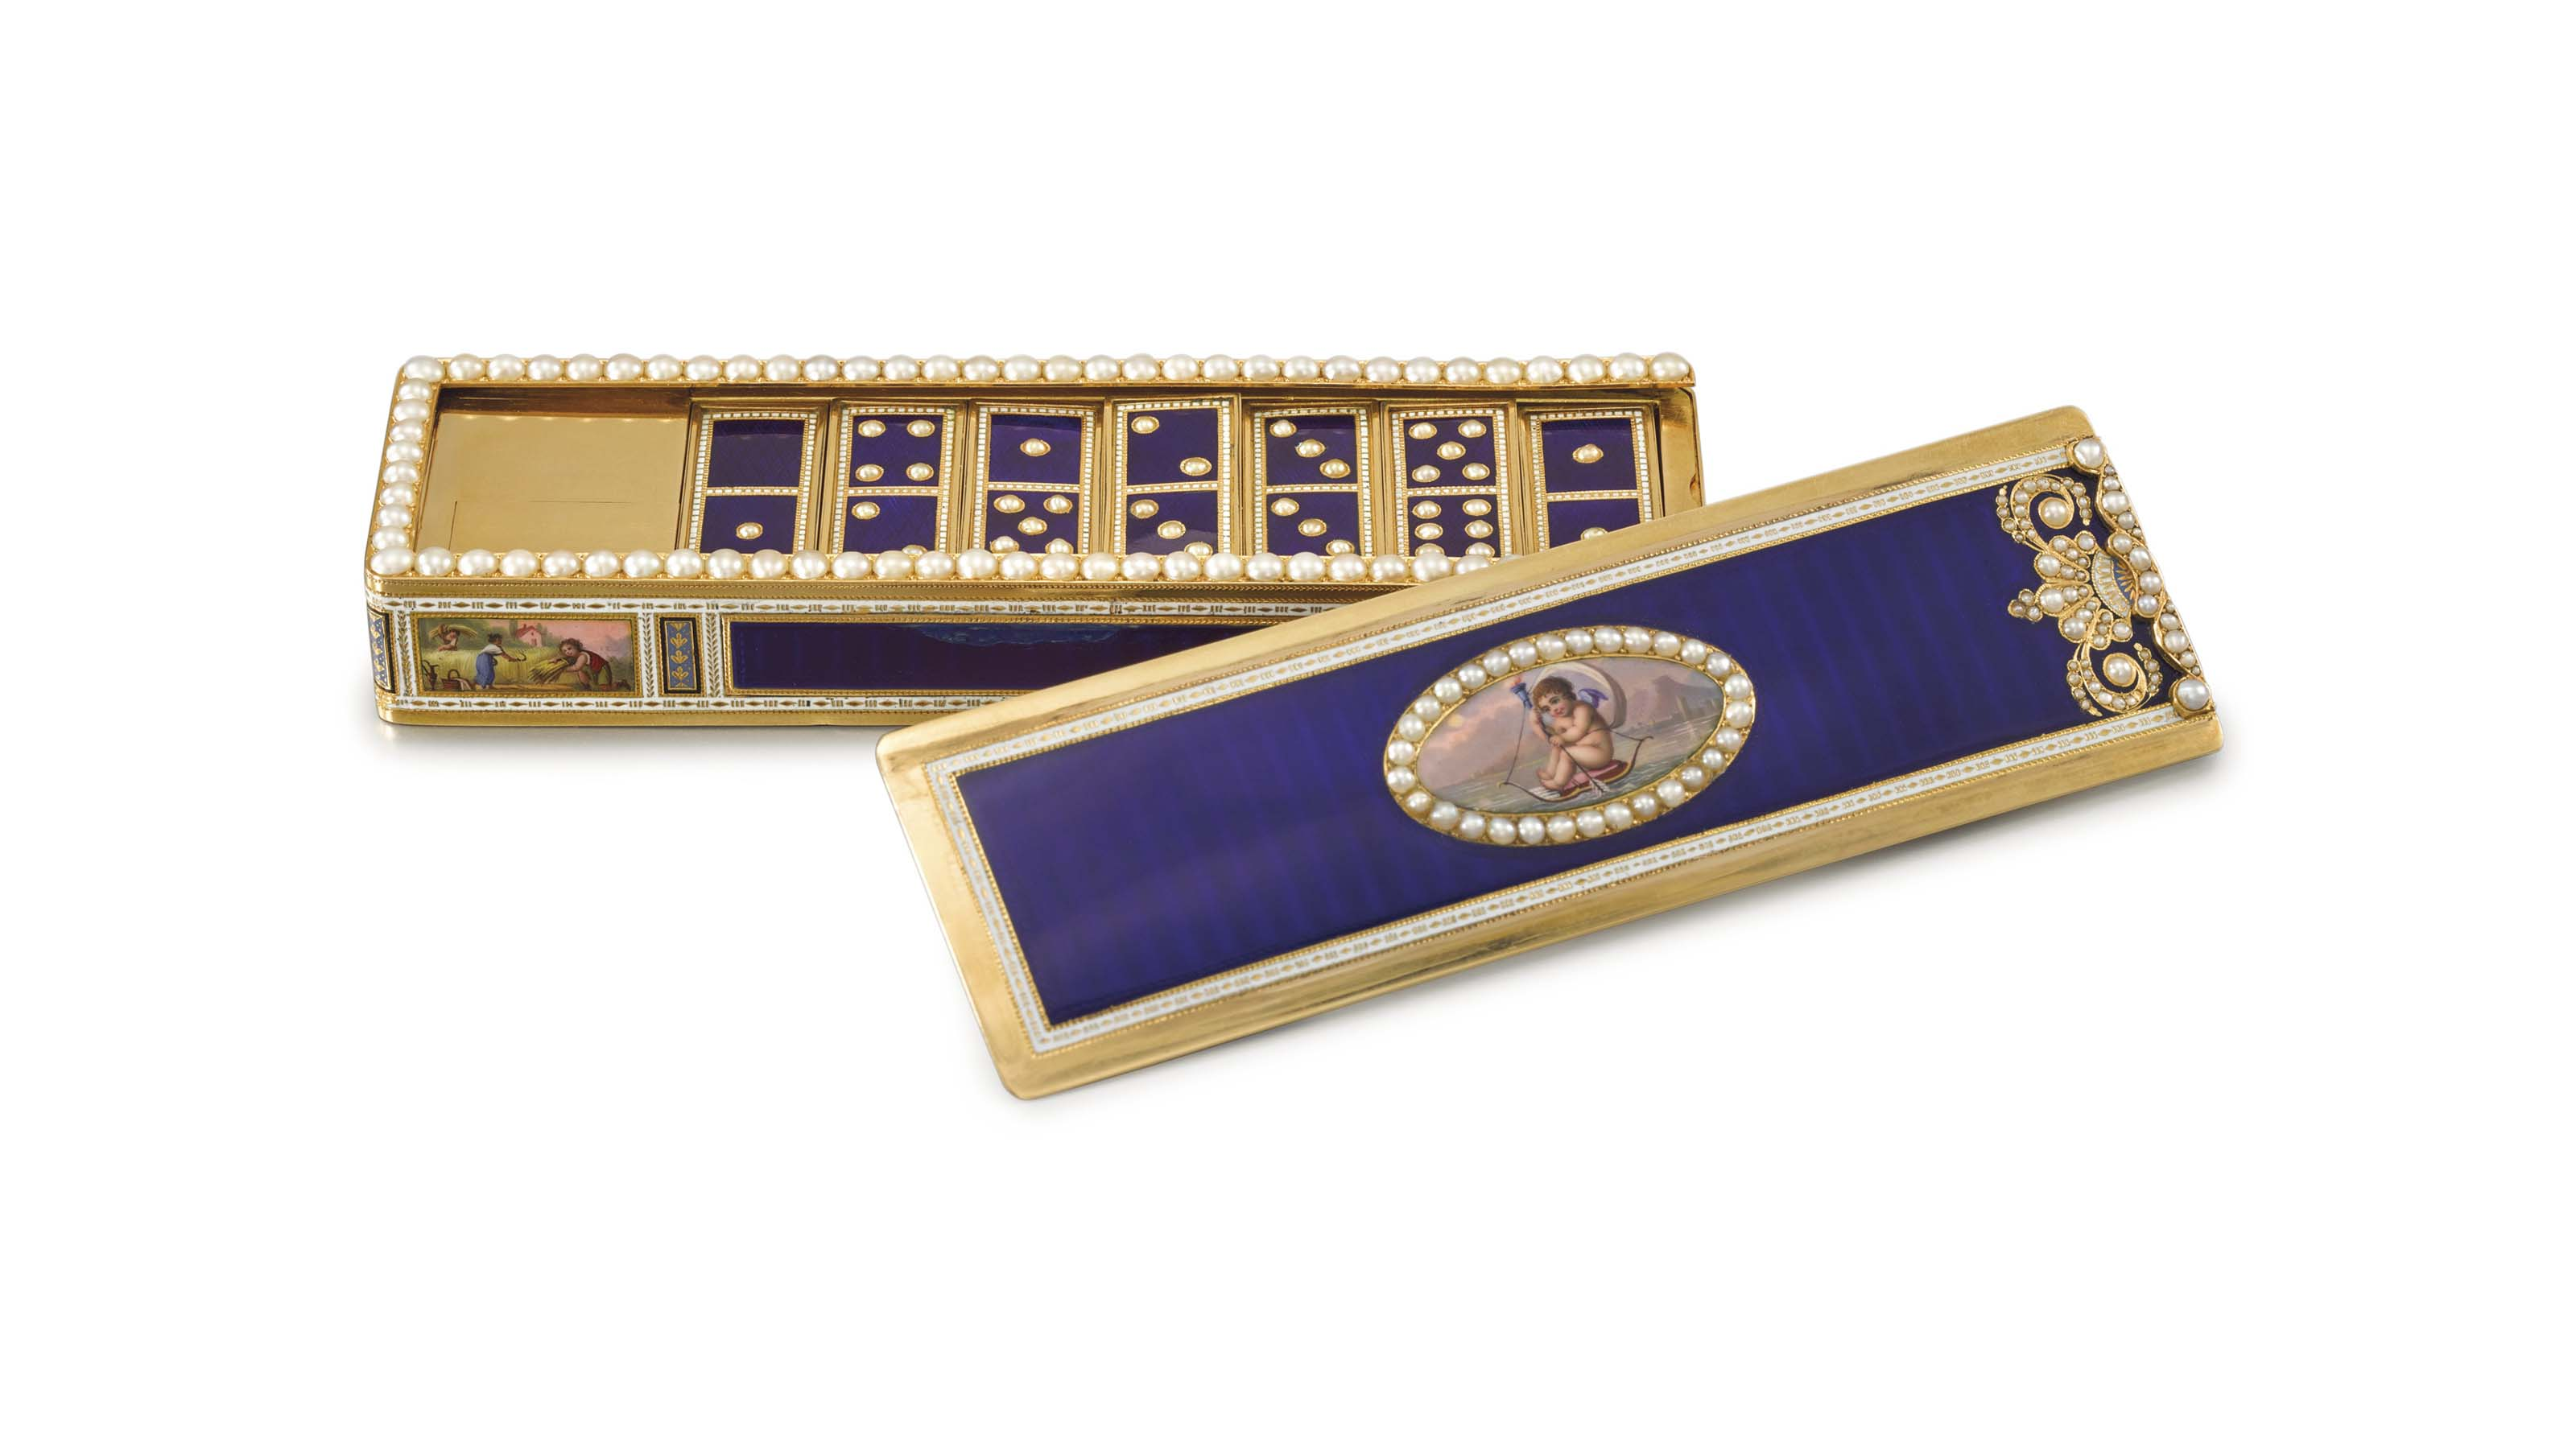 Moulinie, Bautte & Cie. An exceptional and magnificent, probably unique 18K gold enamel and pearl-set musical domino box with twenty-eight 18K gold enamel and pearl-set dominos, made for the Chinese market